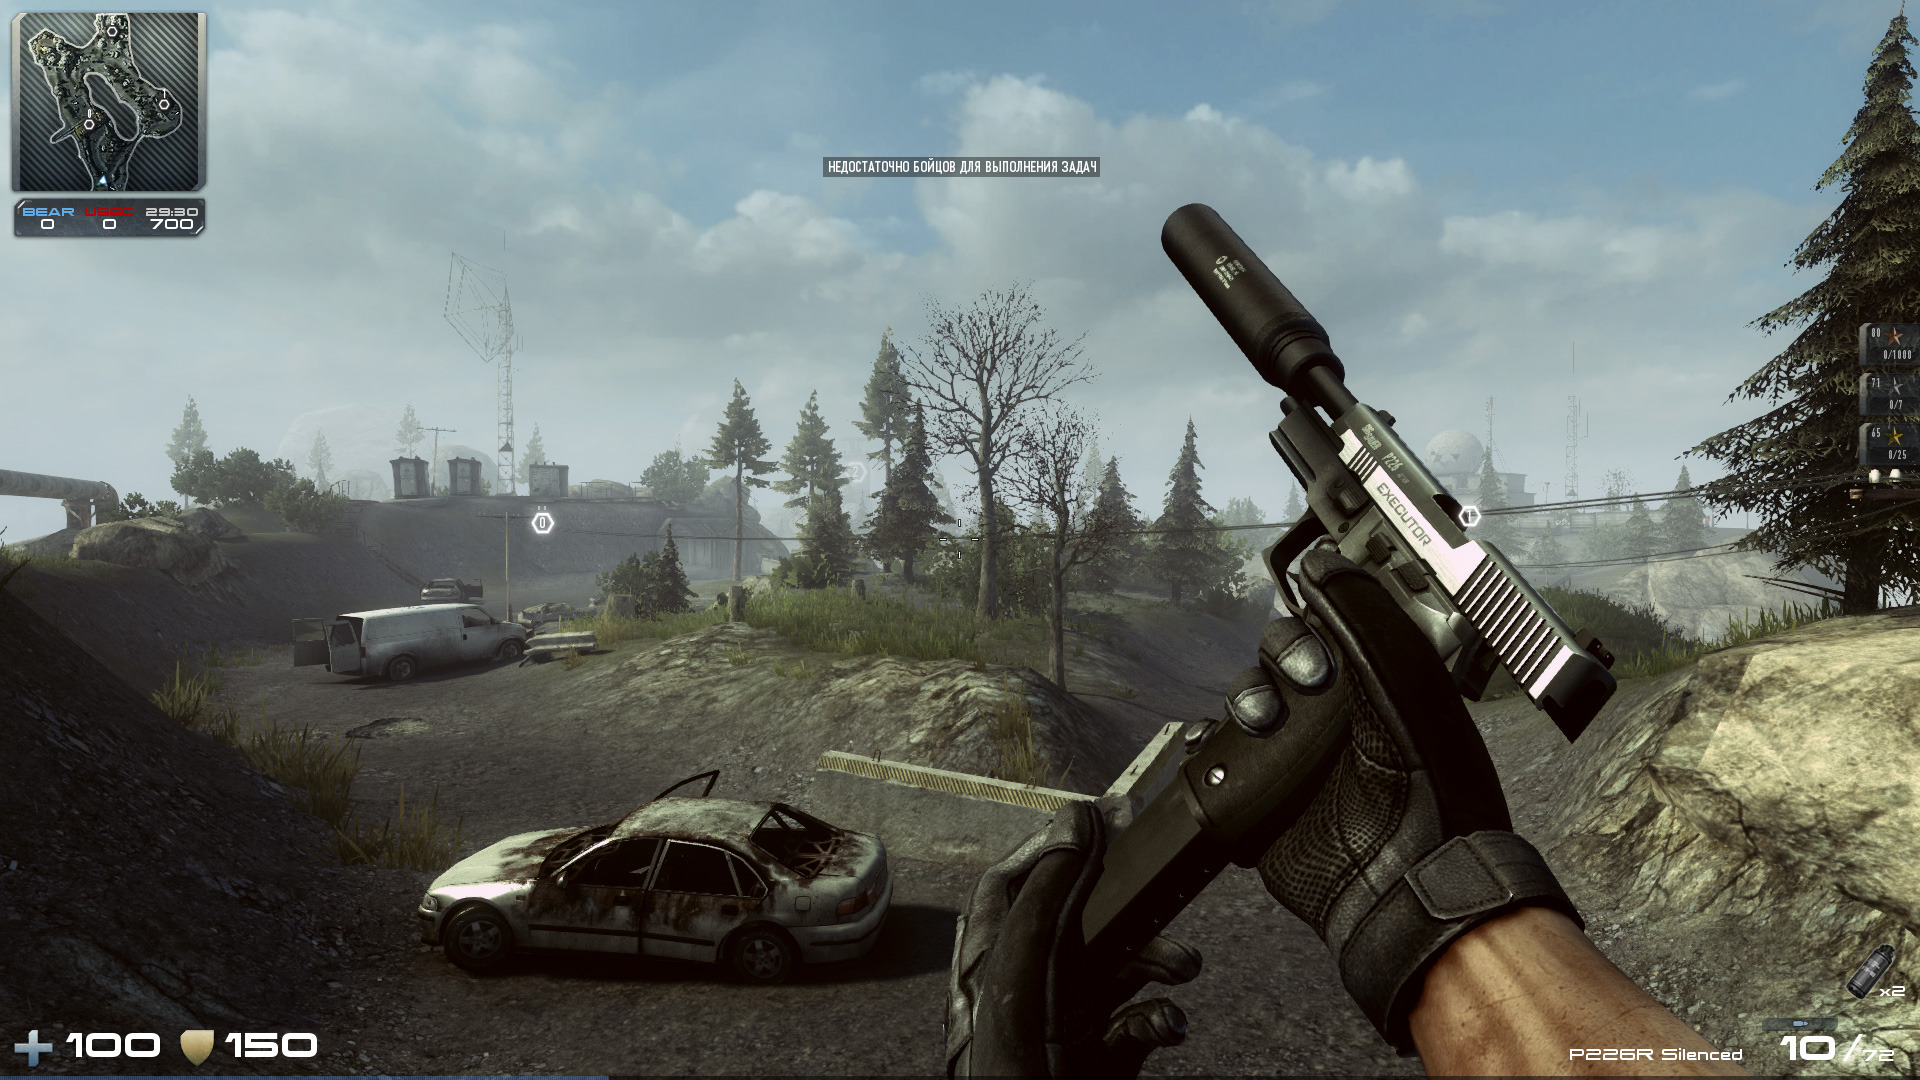 Juego FPS Multijugador Tipo Battlefield 3 - Contract Wars